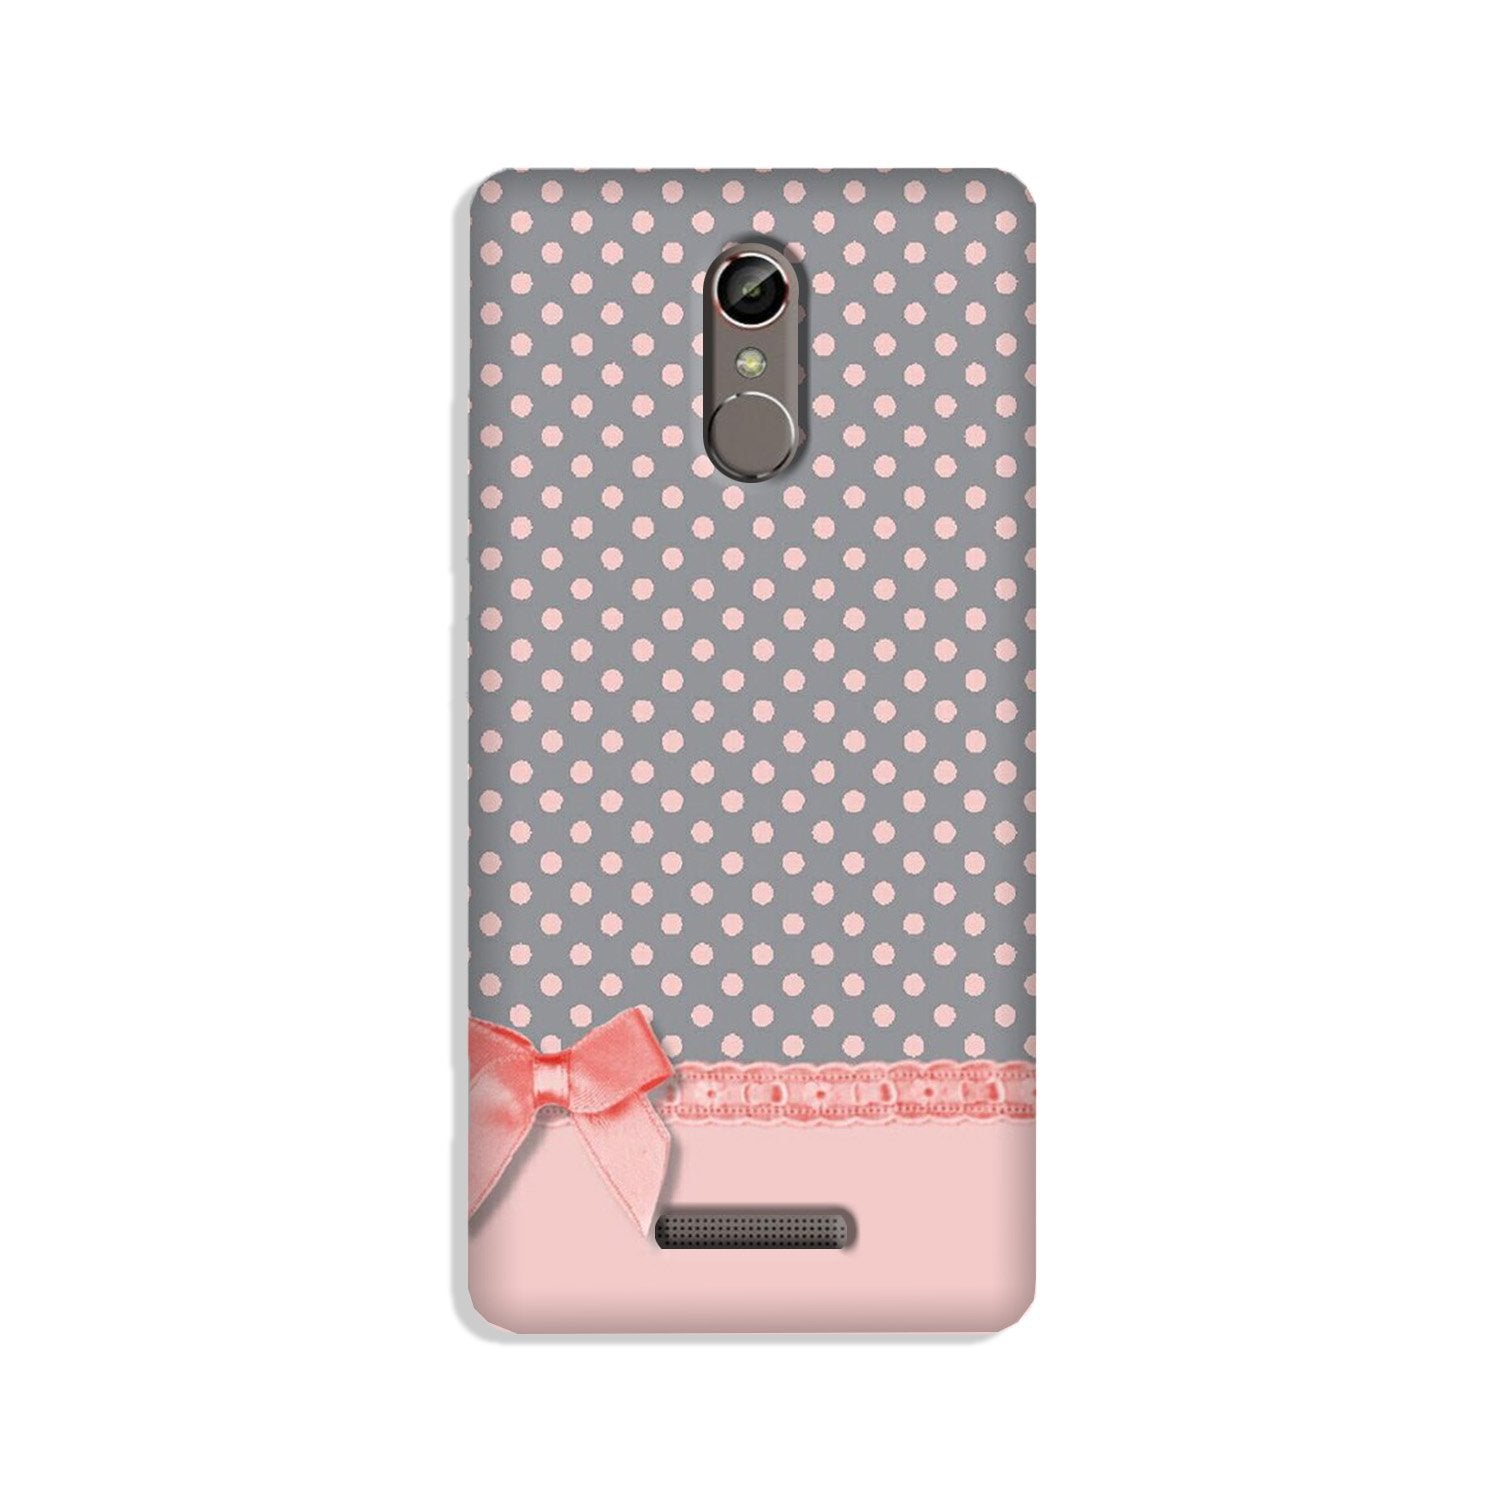 Gift Wrap2 Case for Redmi Note 3